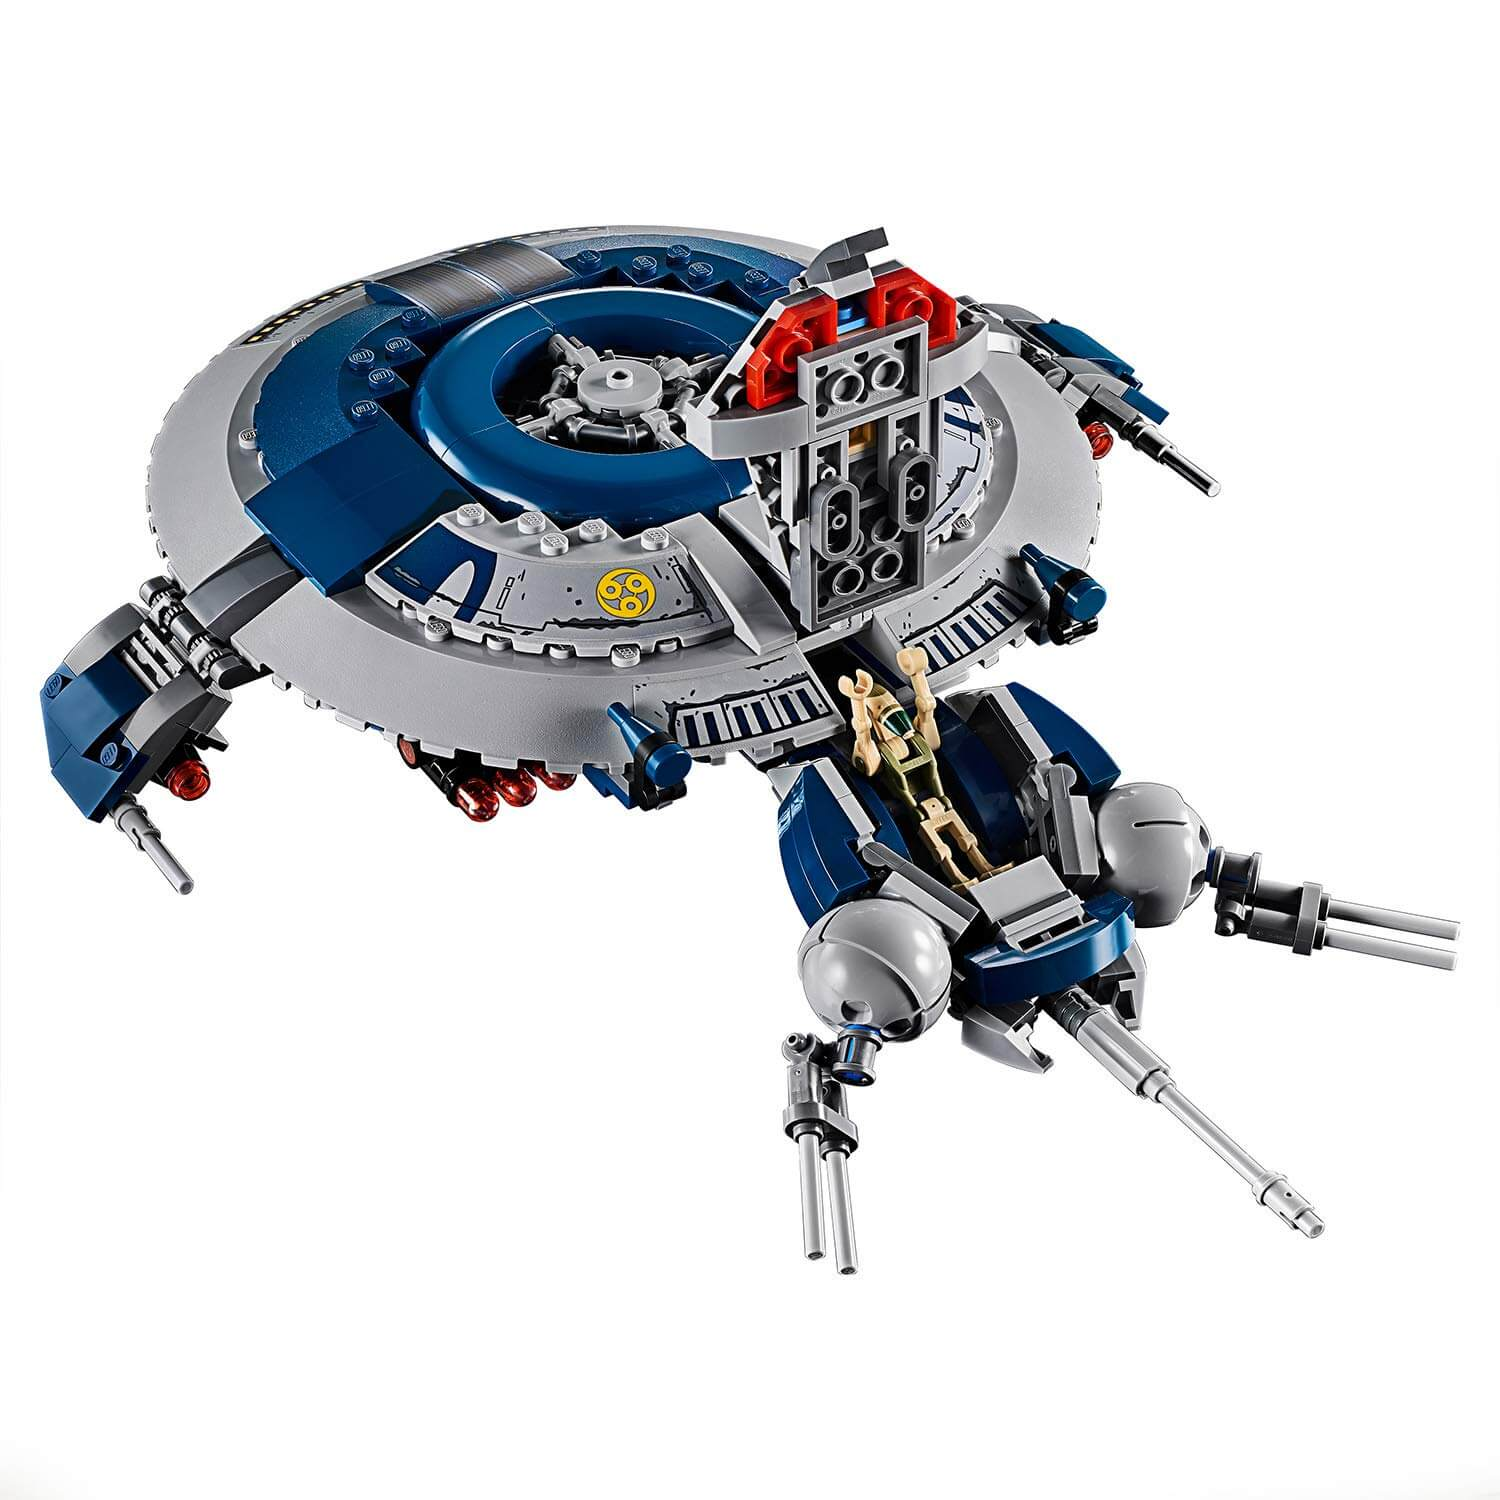 Lego 75233 Star Wars The Revenge Of The Sith Droid Gunship Building Kit The Minifigure Store Authorised Lego Retailer